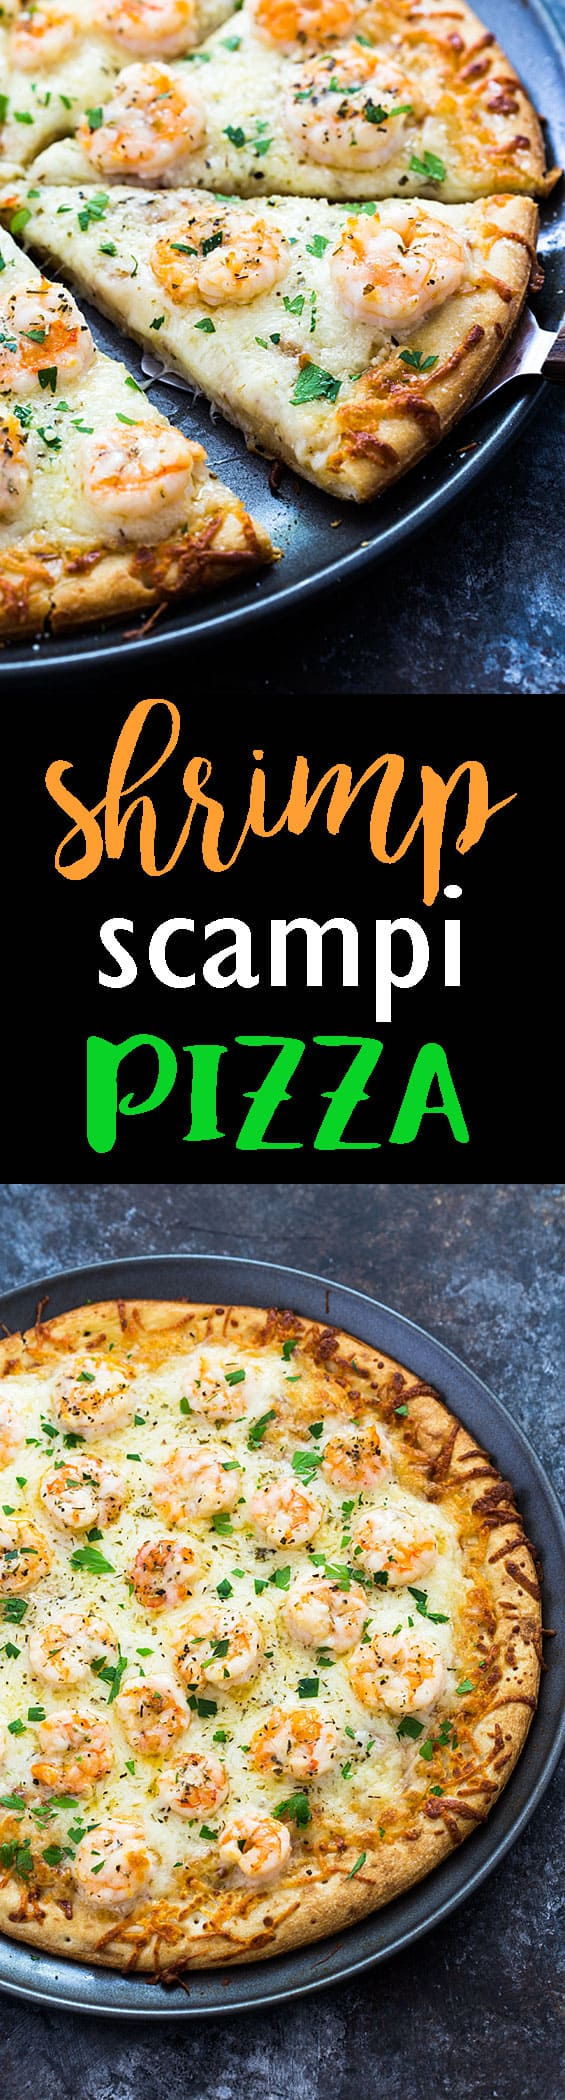 Shrimp Scampi Pizza - Everything you love about shrimp scampi in a cheesy pizza in under 30 minutes!